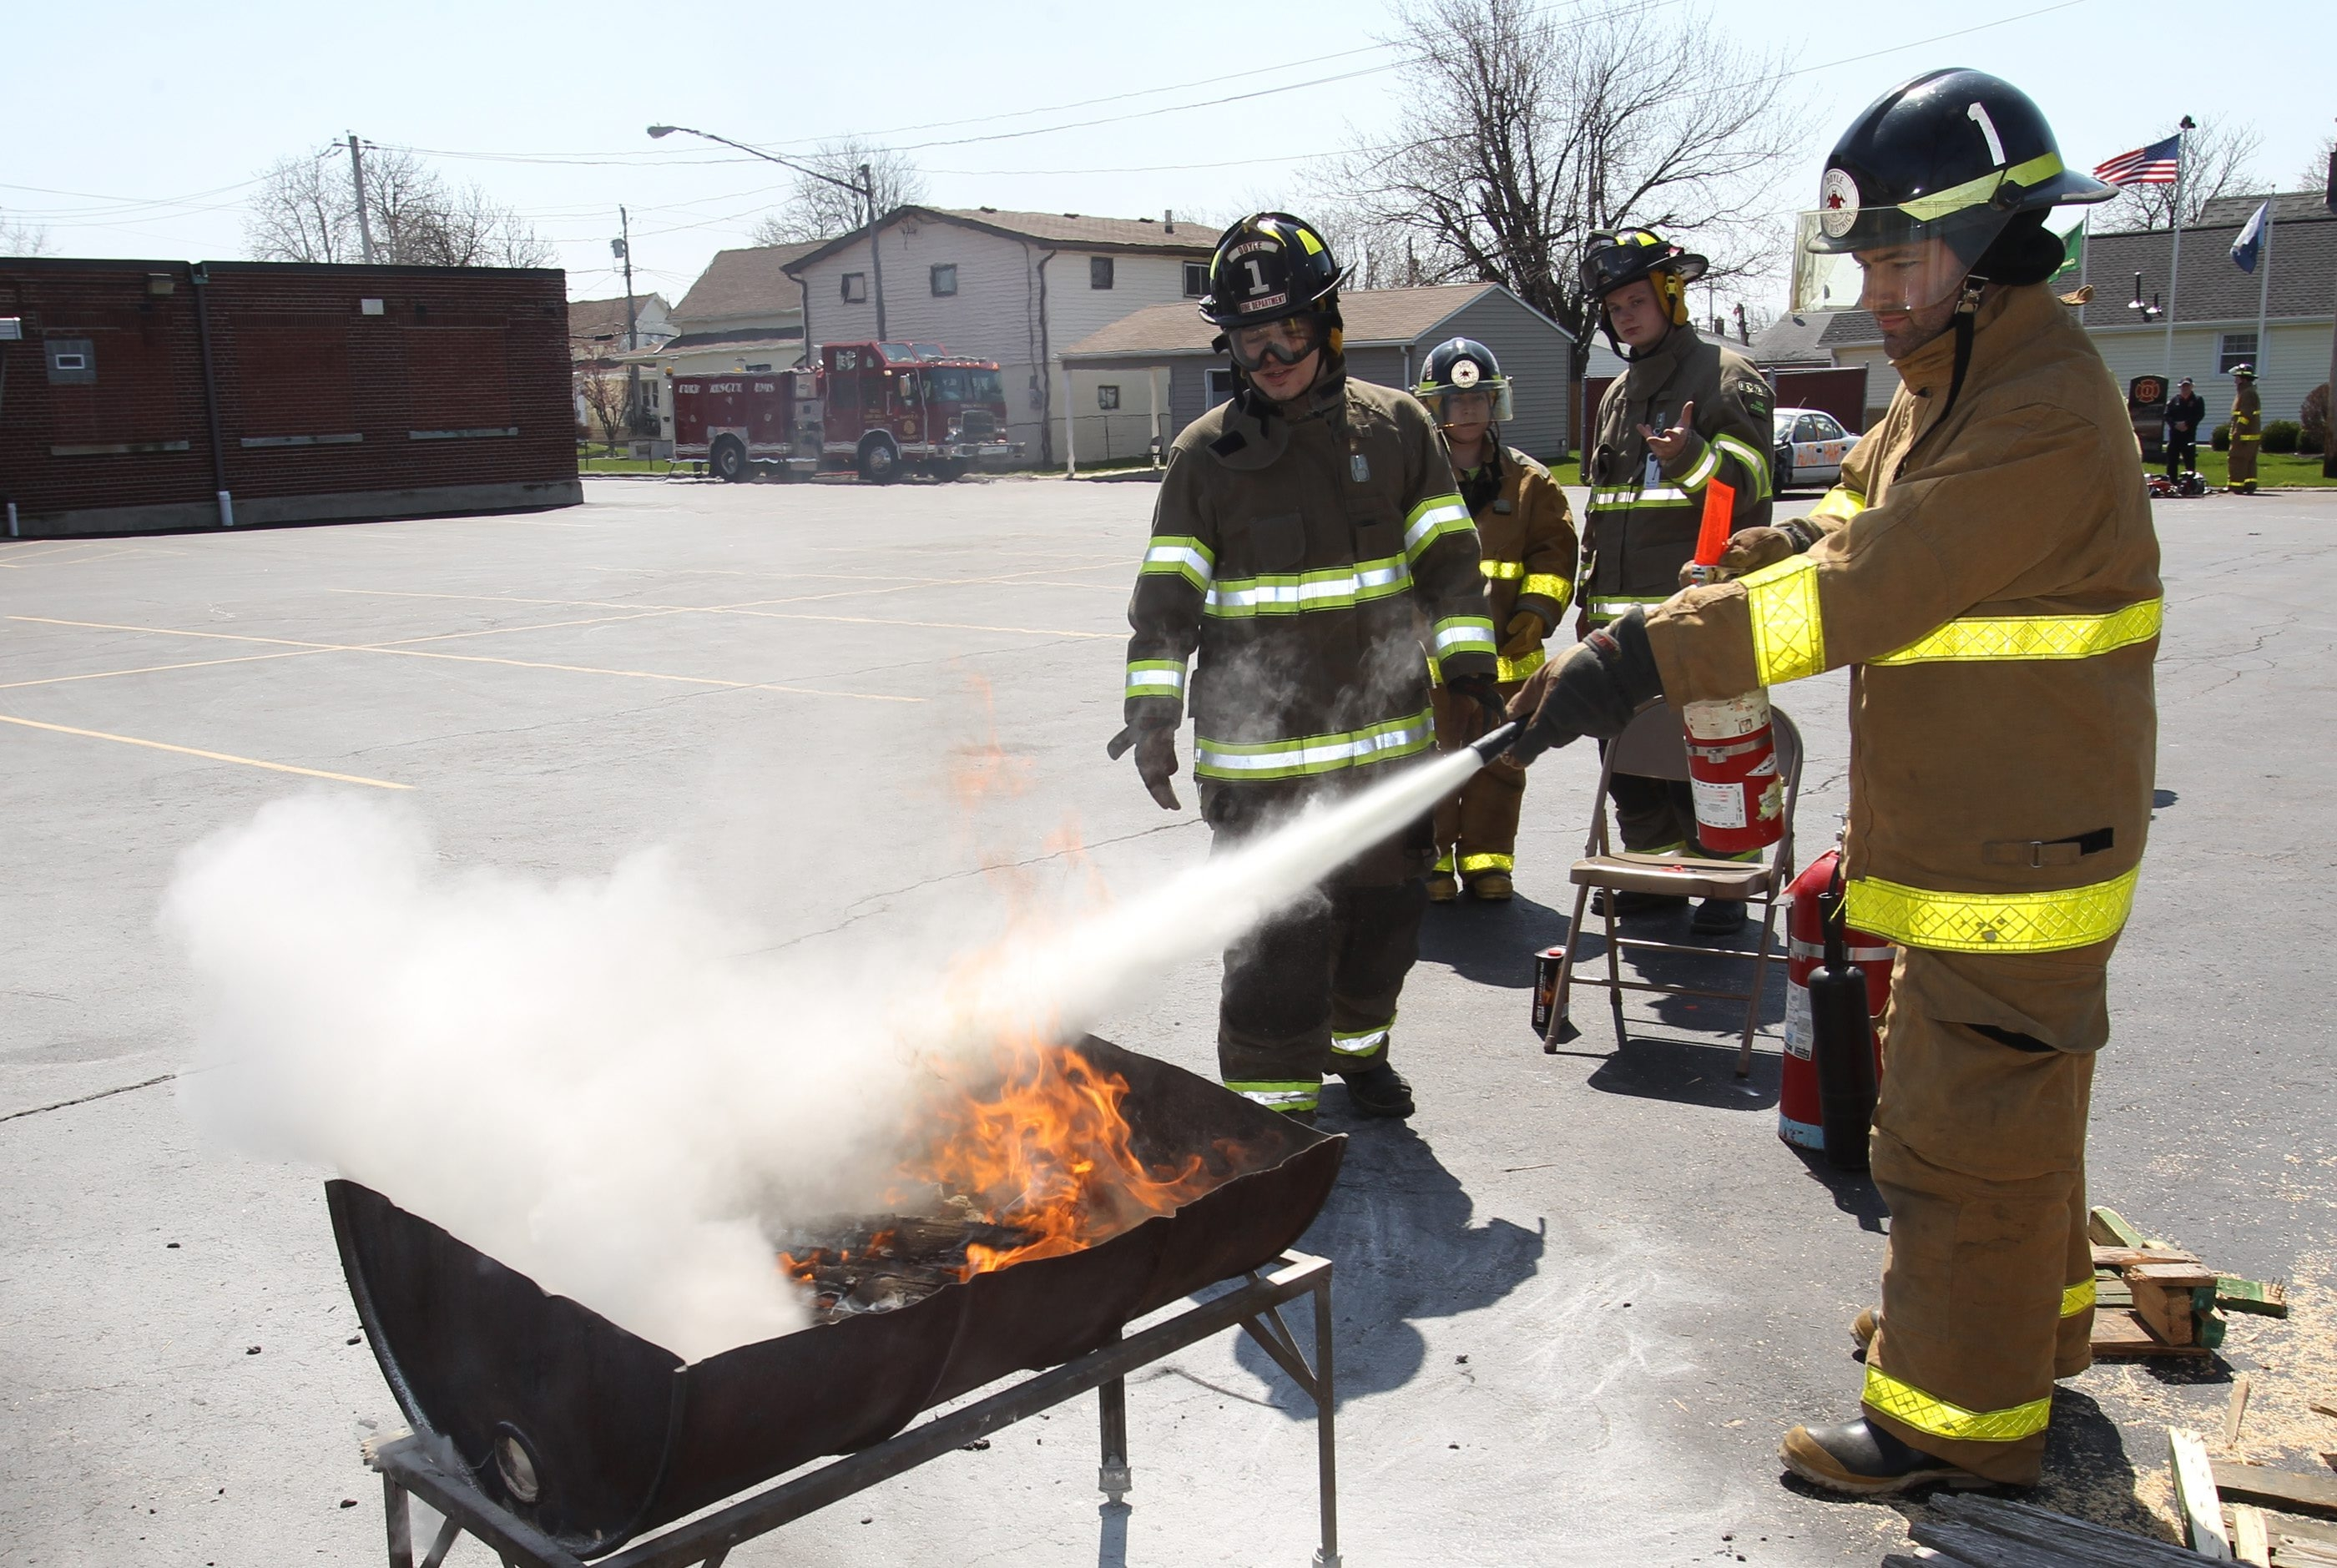 Joe and Teresa Tasker, of Cheektowaga, learn how to put out a fire using a fire extinguisher during an open house Saturday at Doyle Hose Co. 1 on William Street in Cheektowaga.